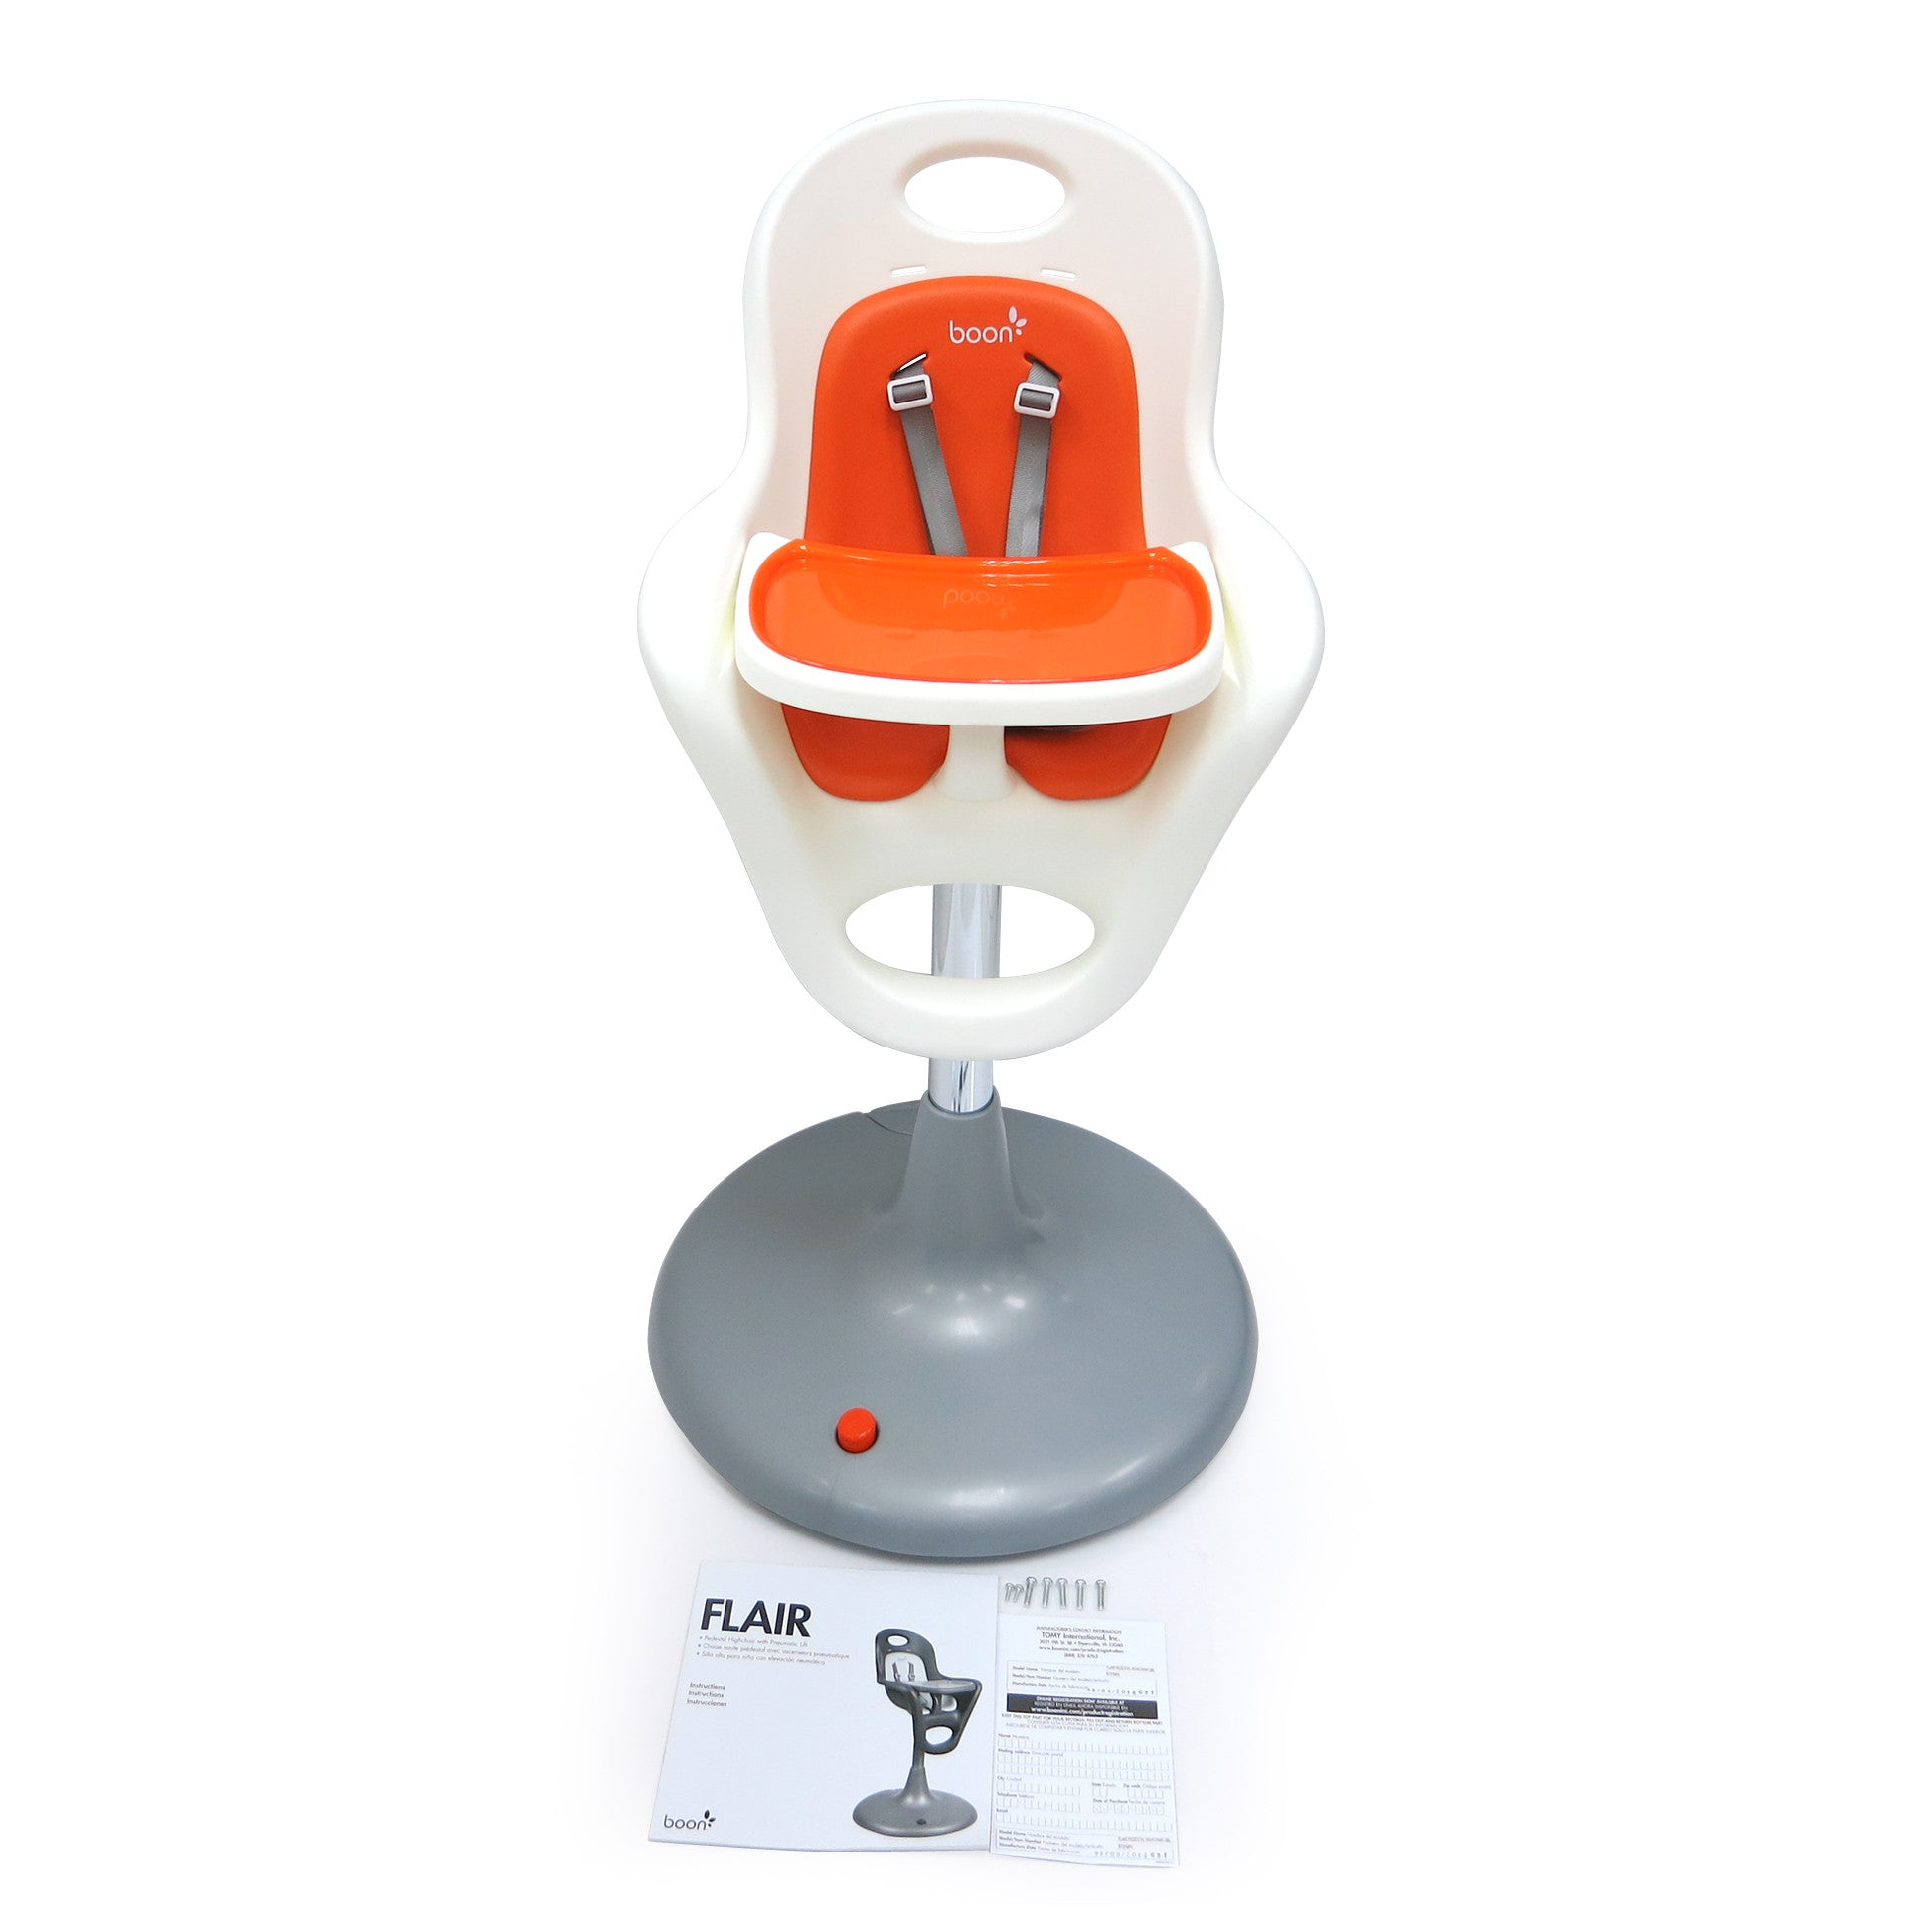 Boon Flair Infant Highchair With Foot Pedal Lift